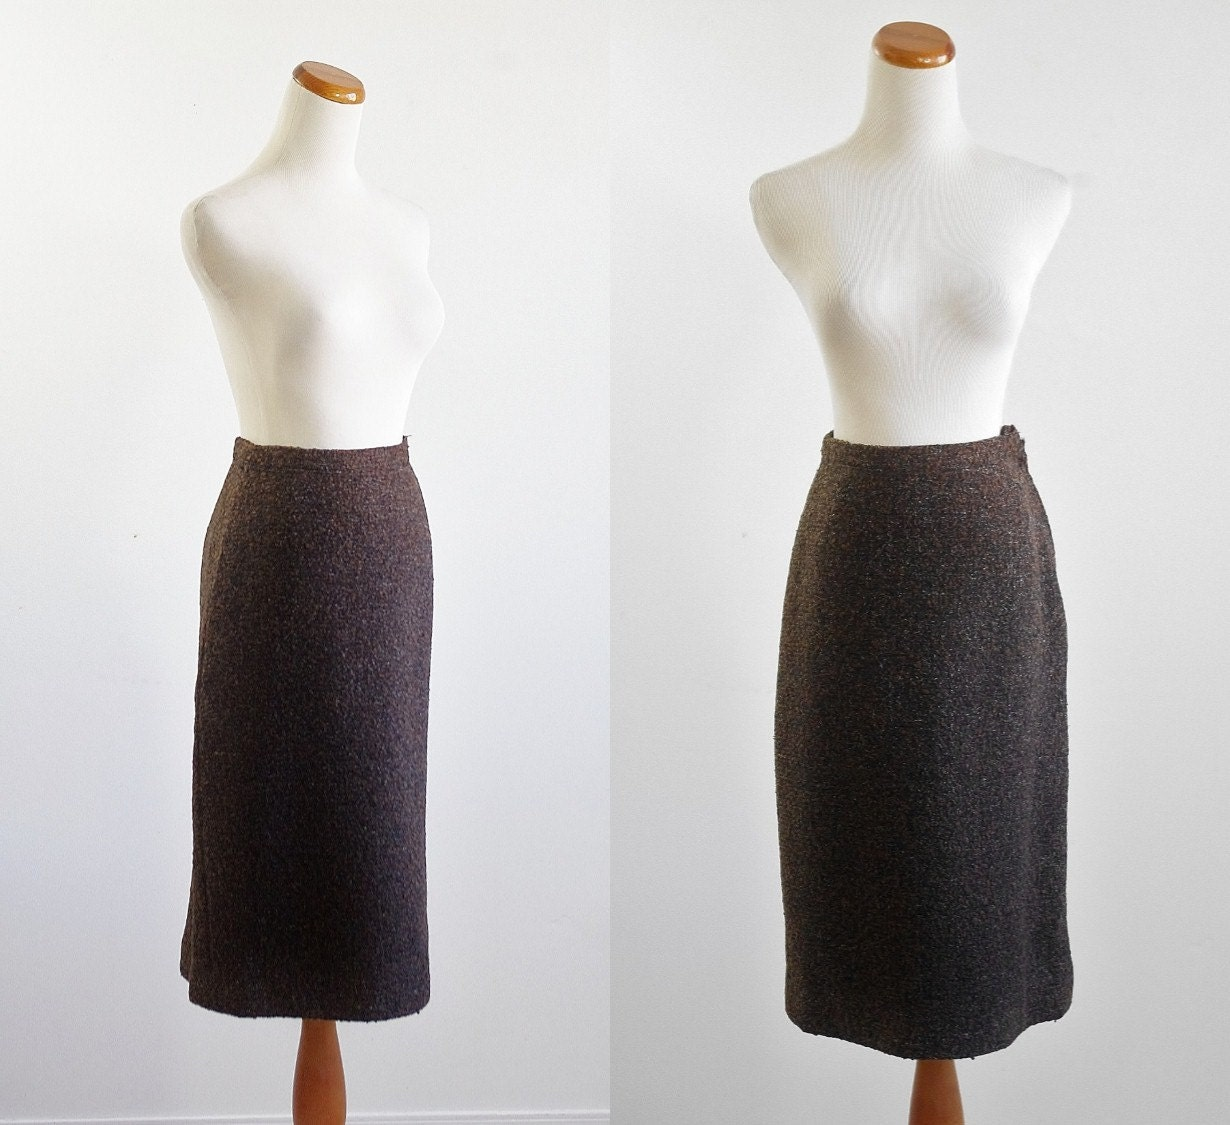 vintage 50s skirt 1950s pencil skirt small by mituvintage